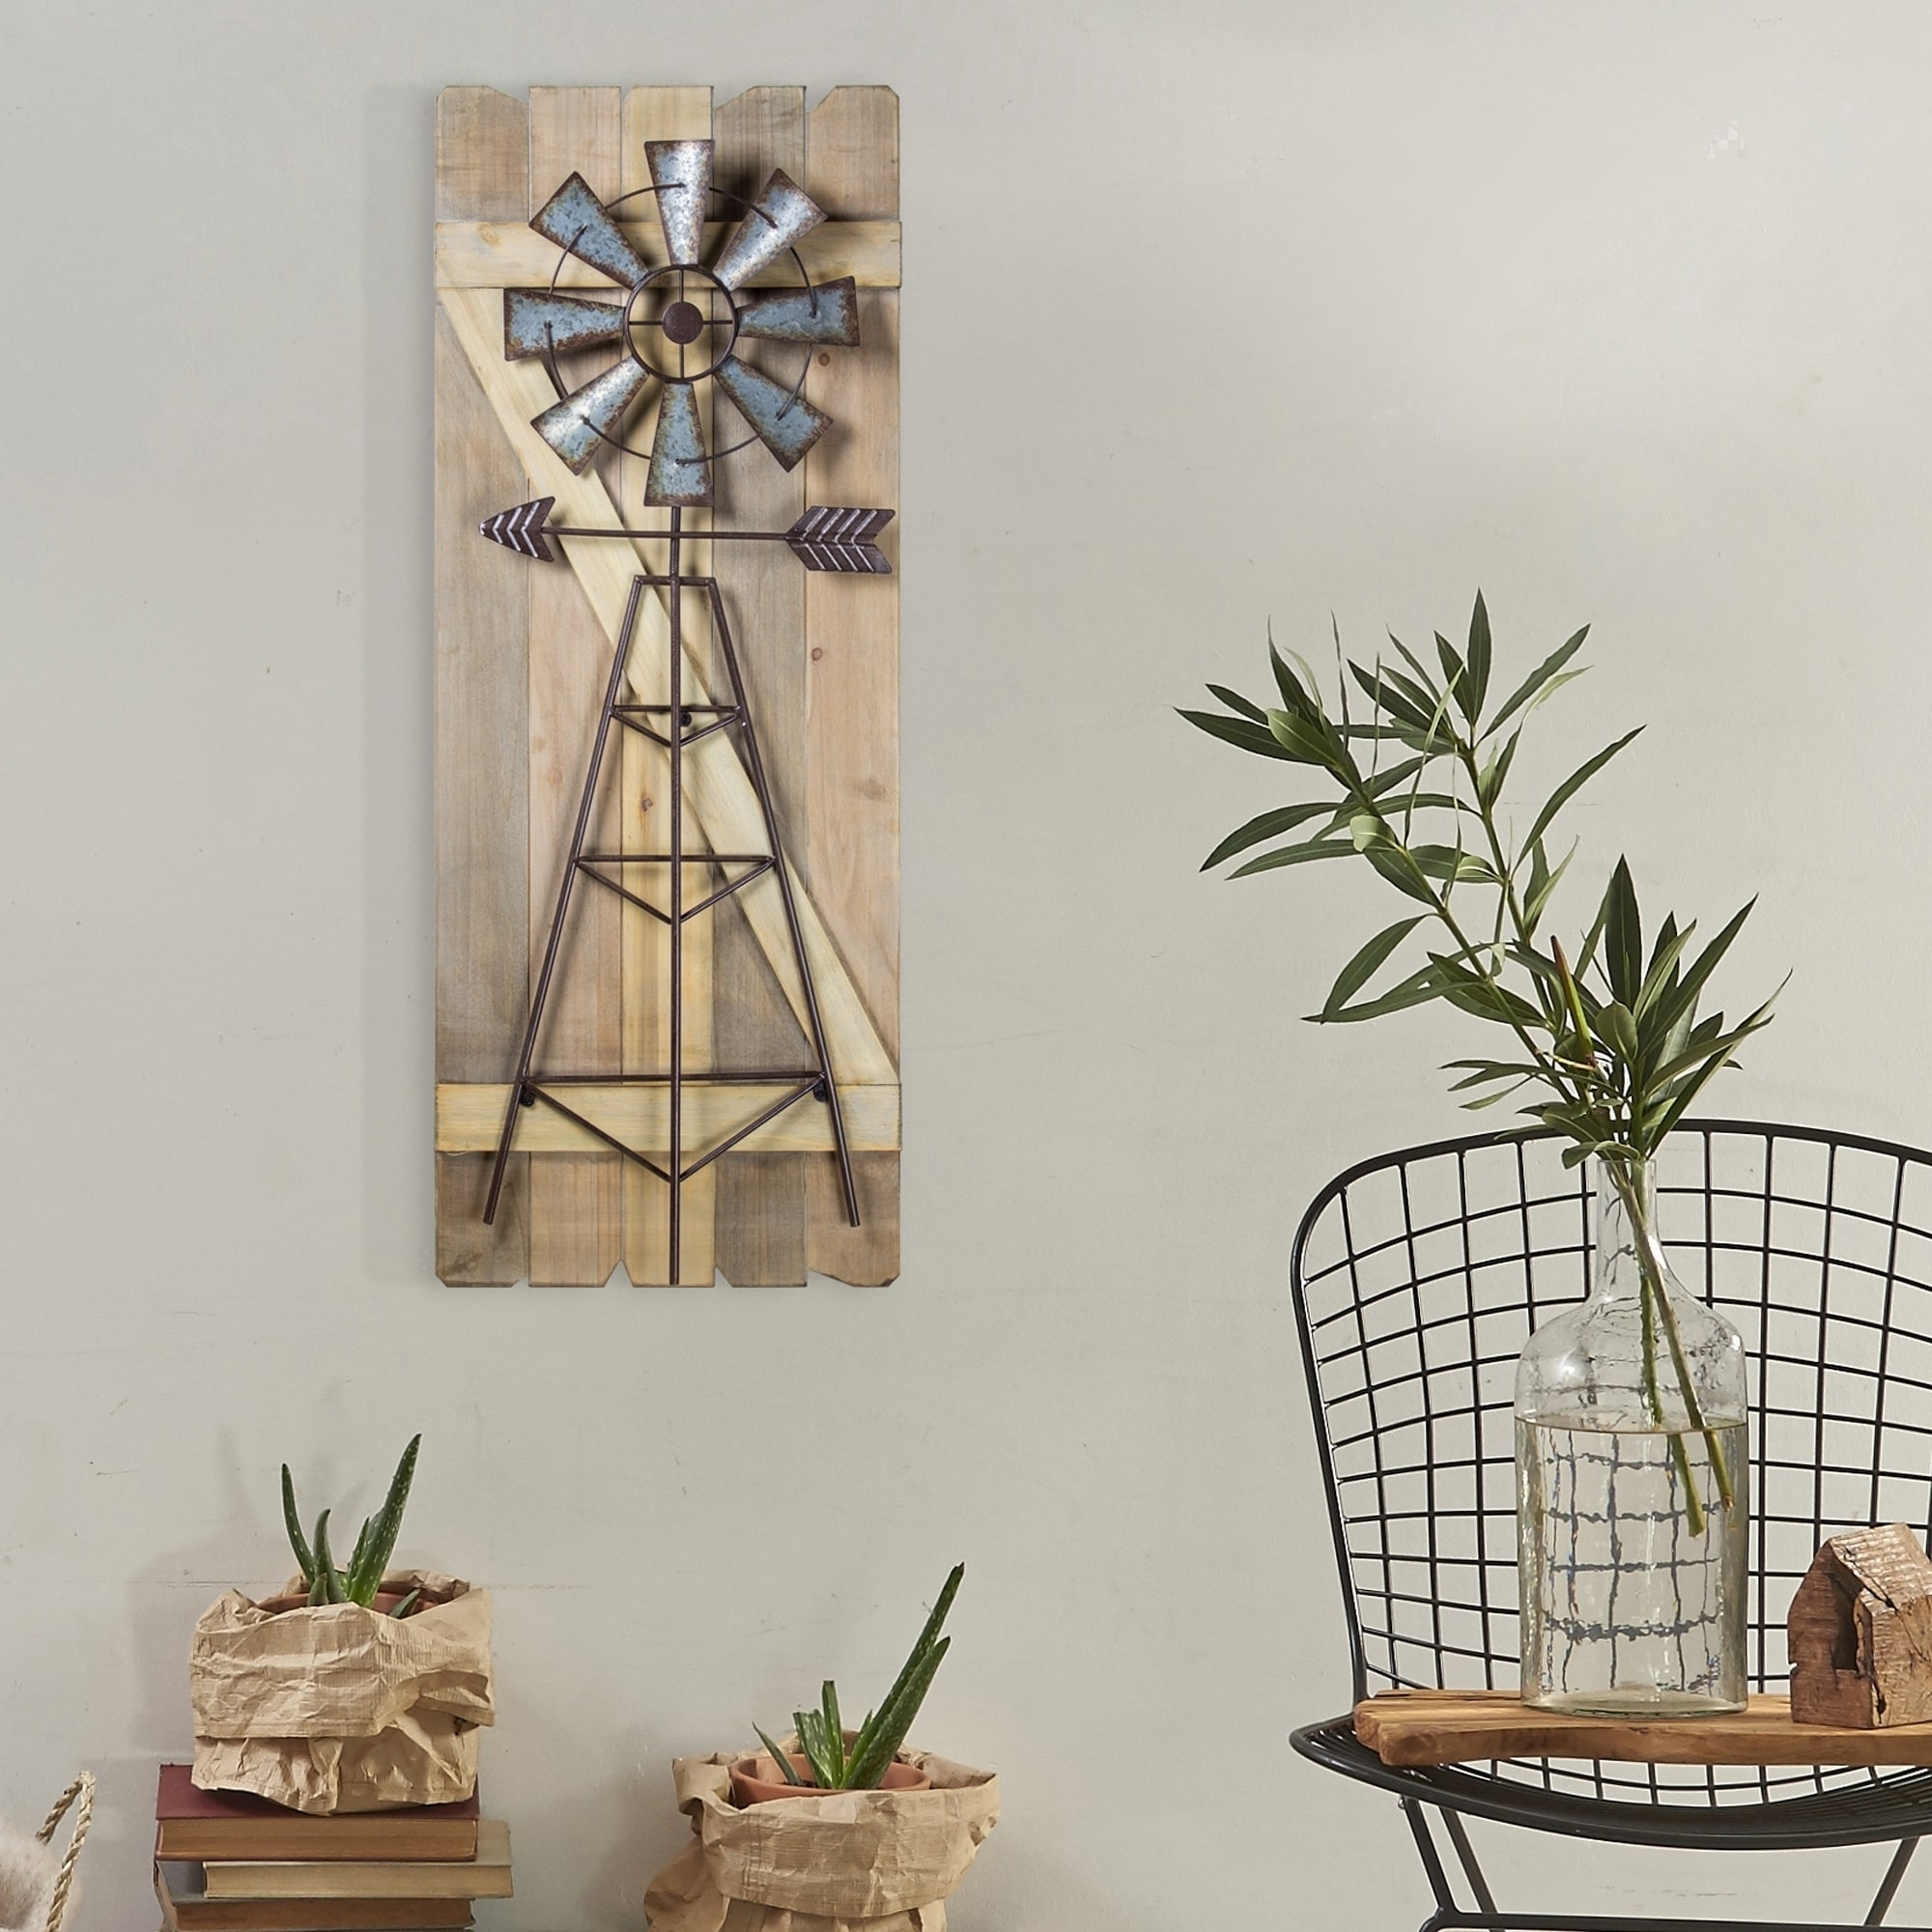 Most Current Magnificent Metal Windmill Wall Decor Crest Wall Art Ideas Throughout Windmill Wall Art (View 6 of 15)